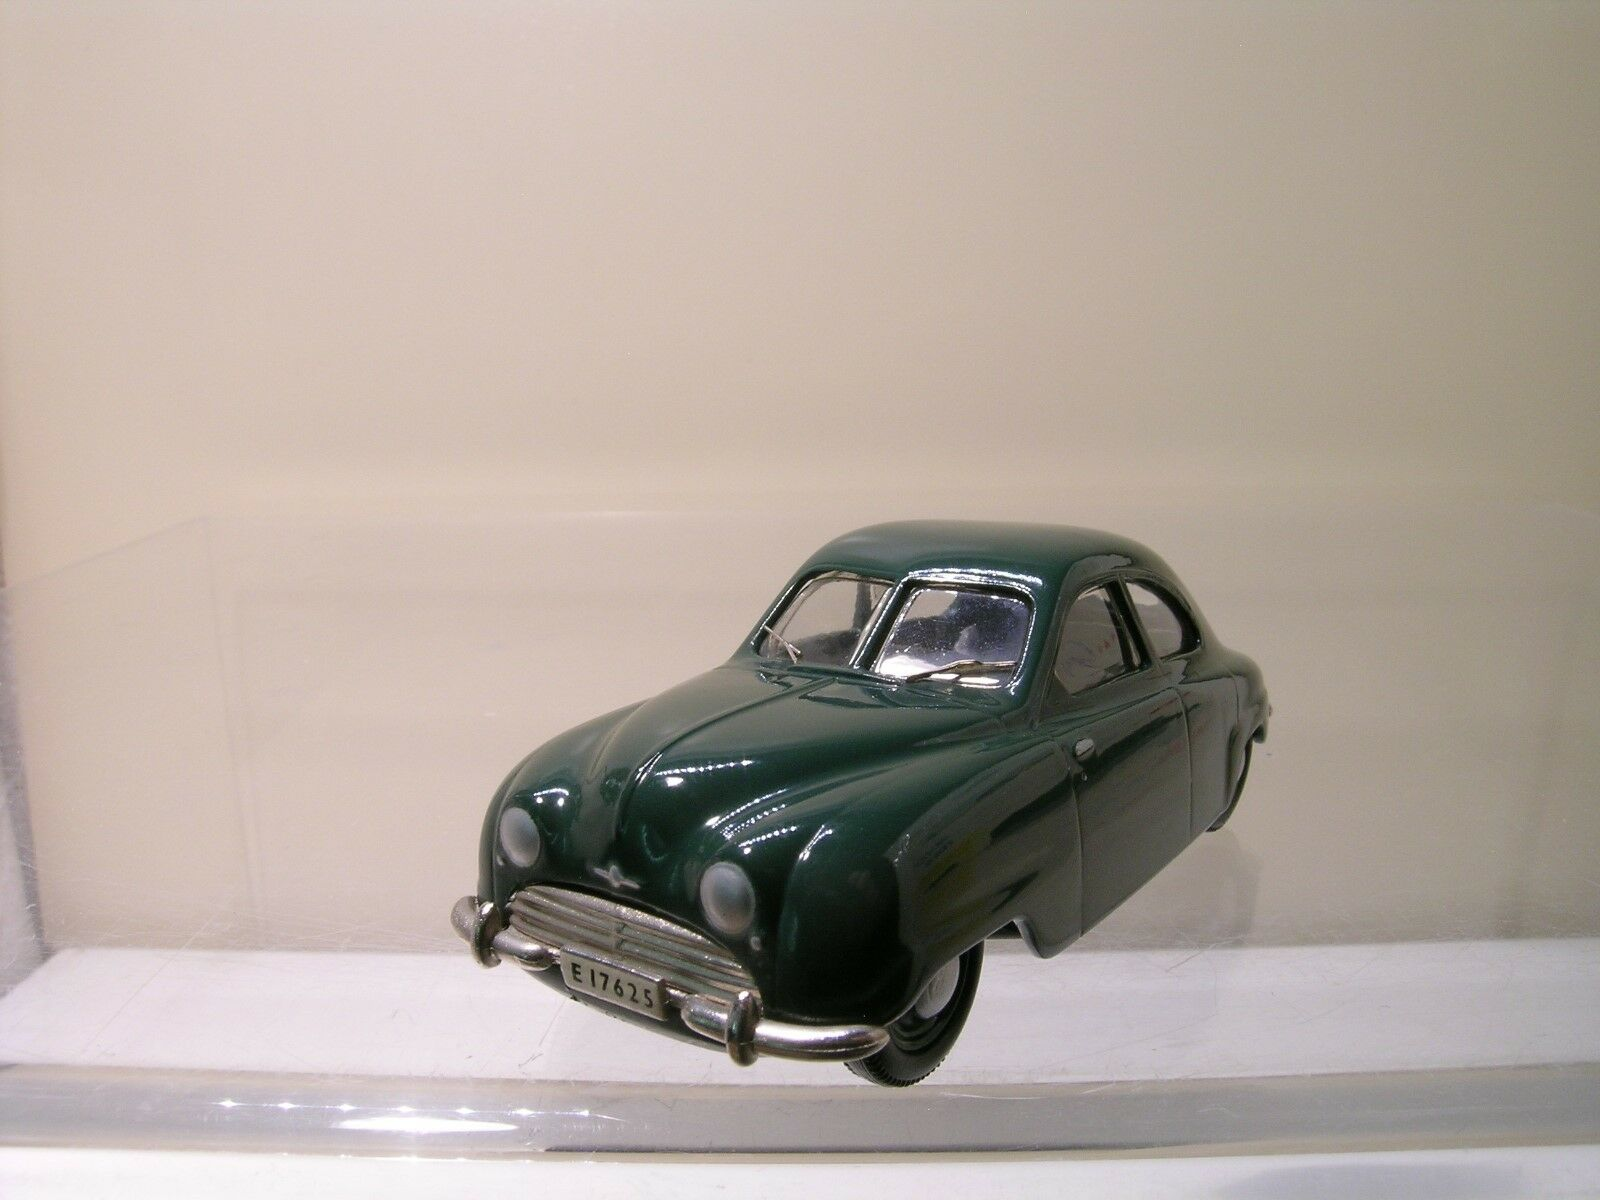 SOMERVILLE MODELS 119 SAAB 92 SEDAN 2018 Verde SCALE 143